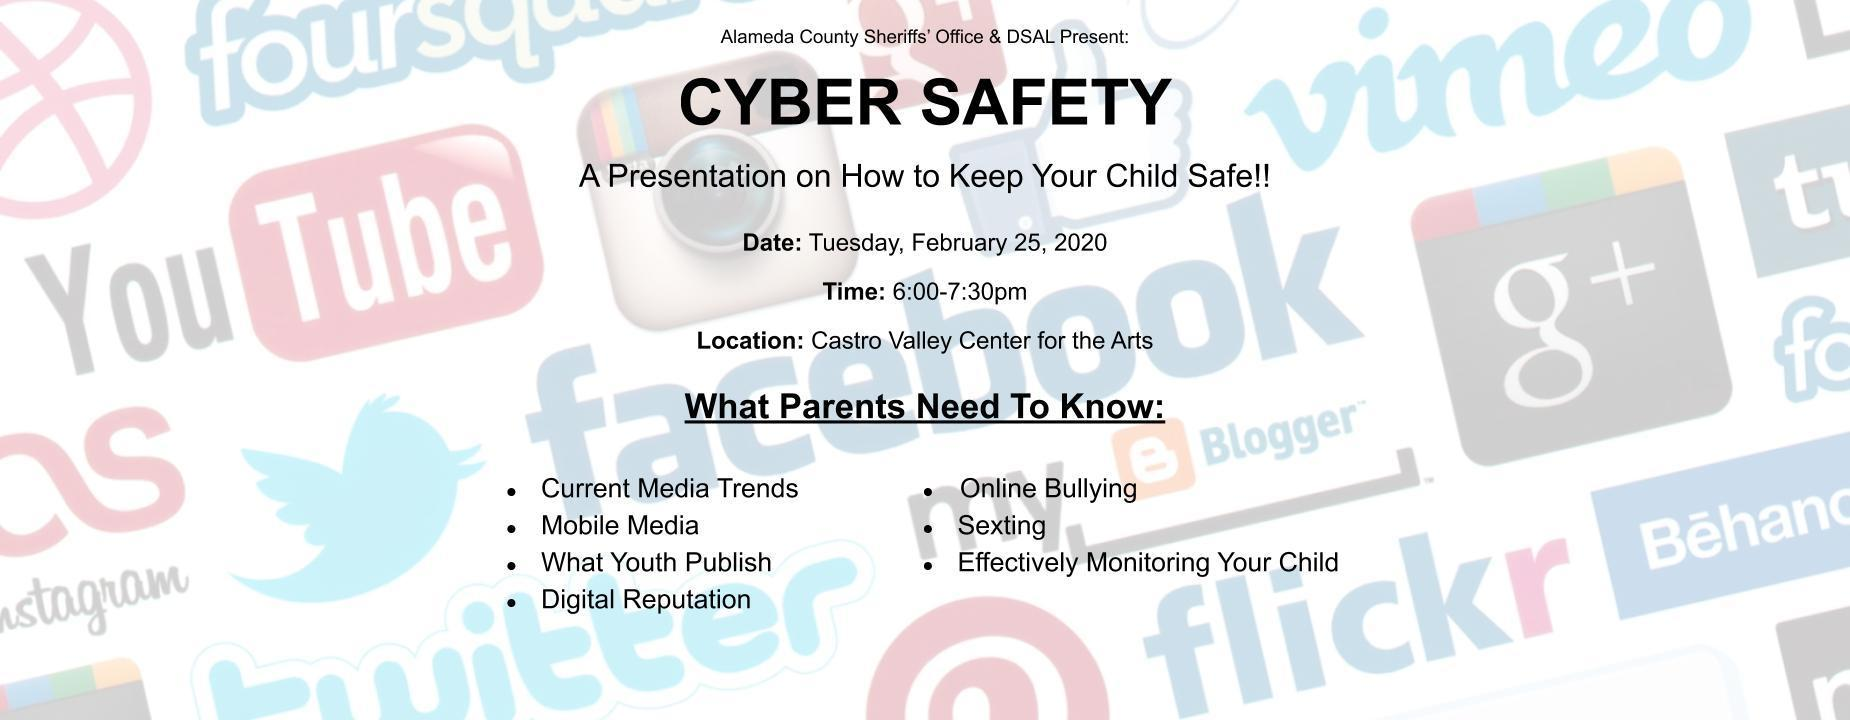 Cyber Safety Flyer